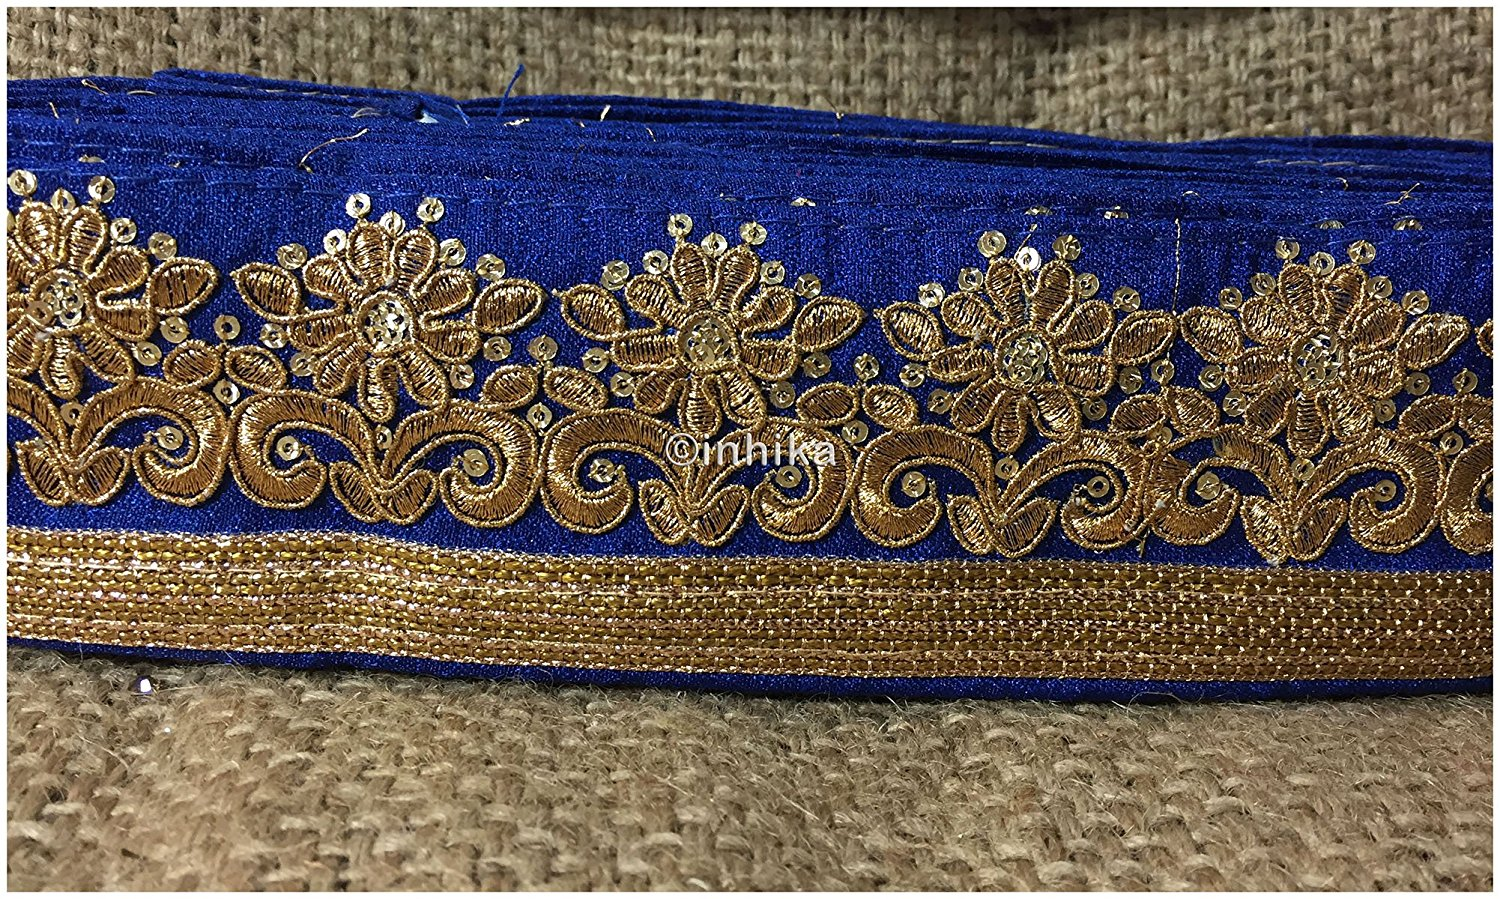 lace trim fabric designer fabric trim for garment wholesale suppliers Blue-Embroidery-Sequins-3-Inch-Wide-3297